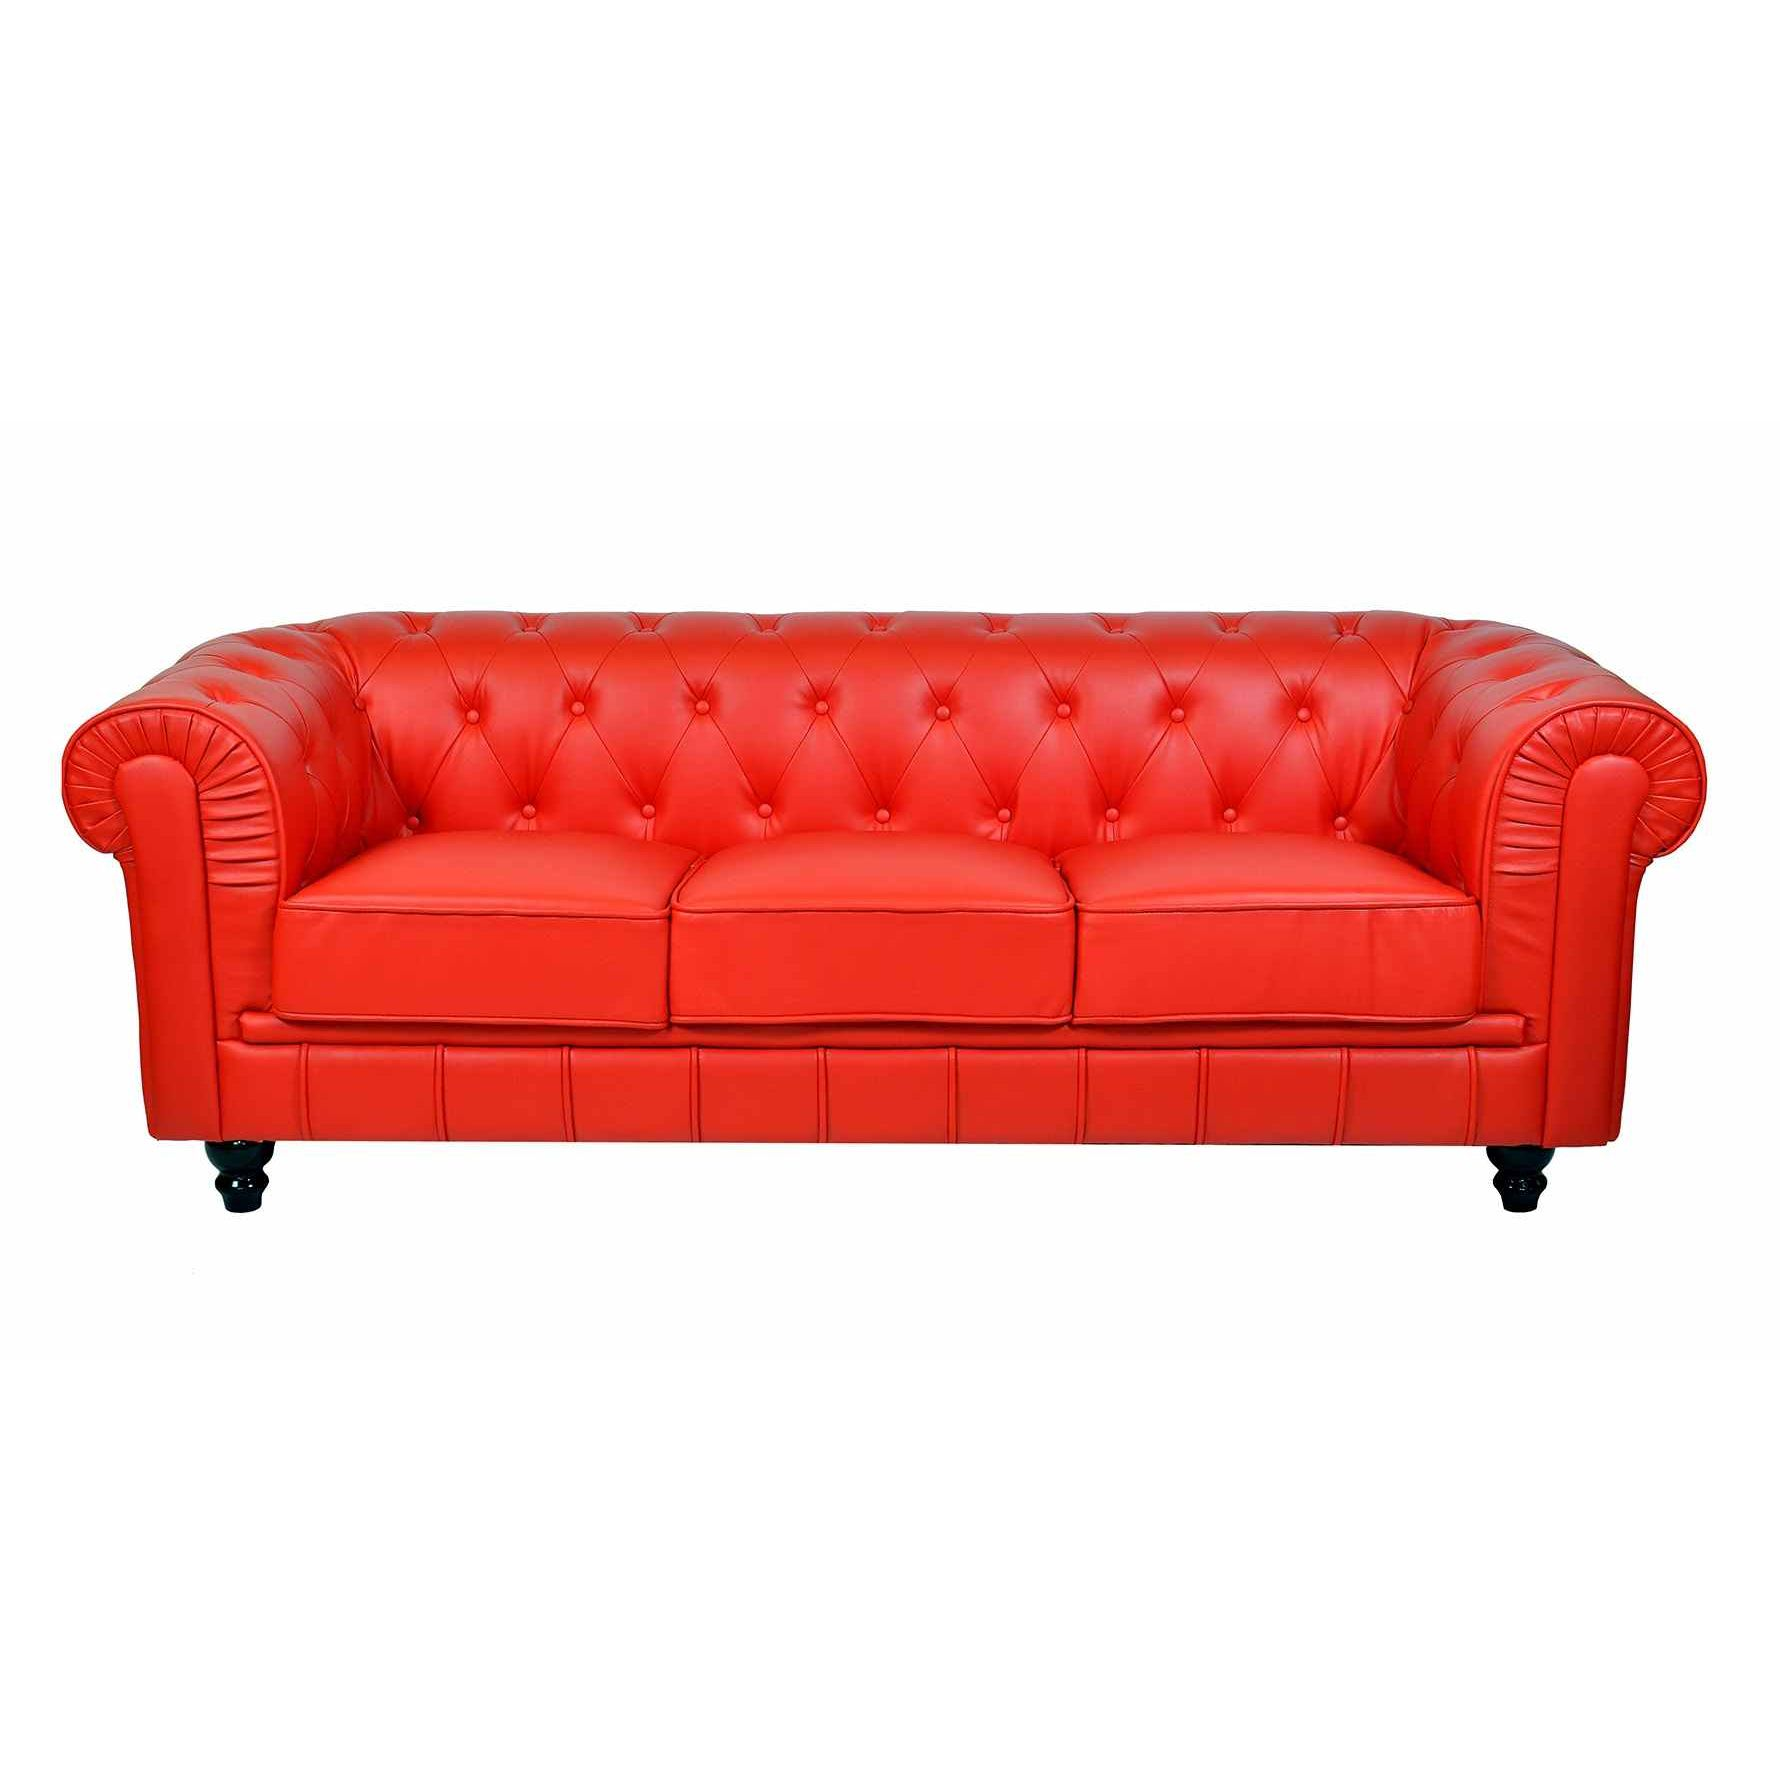 deco in paris canape chesterfield 3 places rouge can chester 3p pu rouge. Black Bedroom Furniture Sets. Home Design Ideas